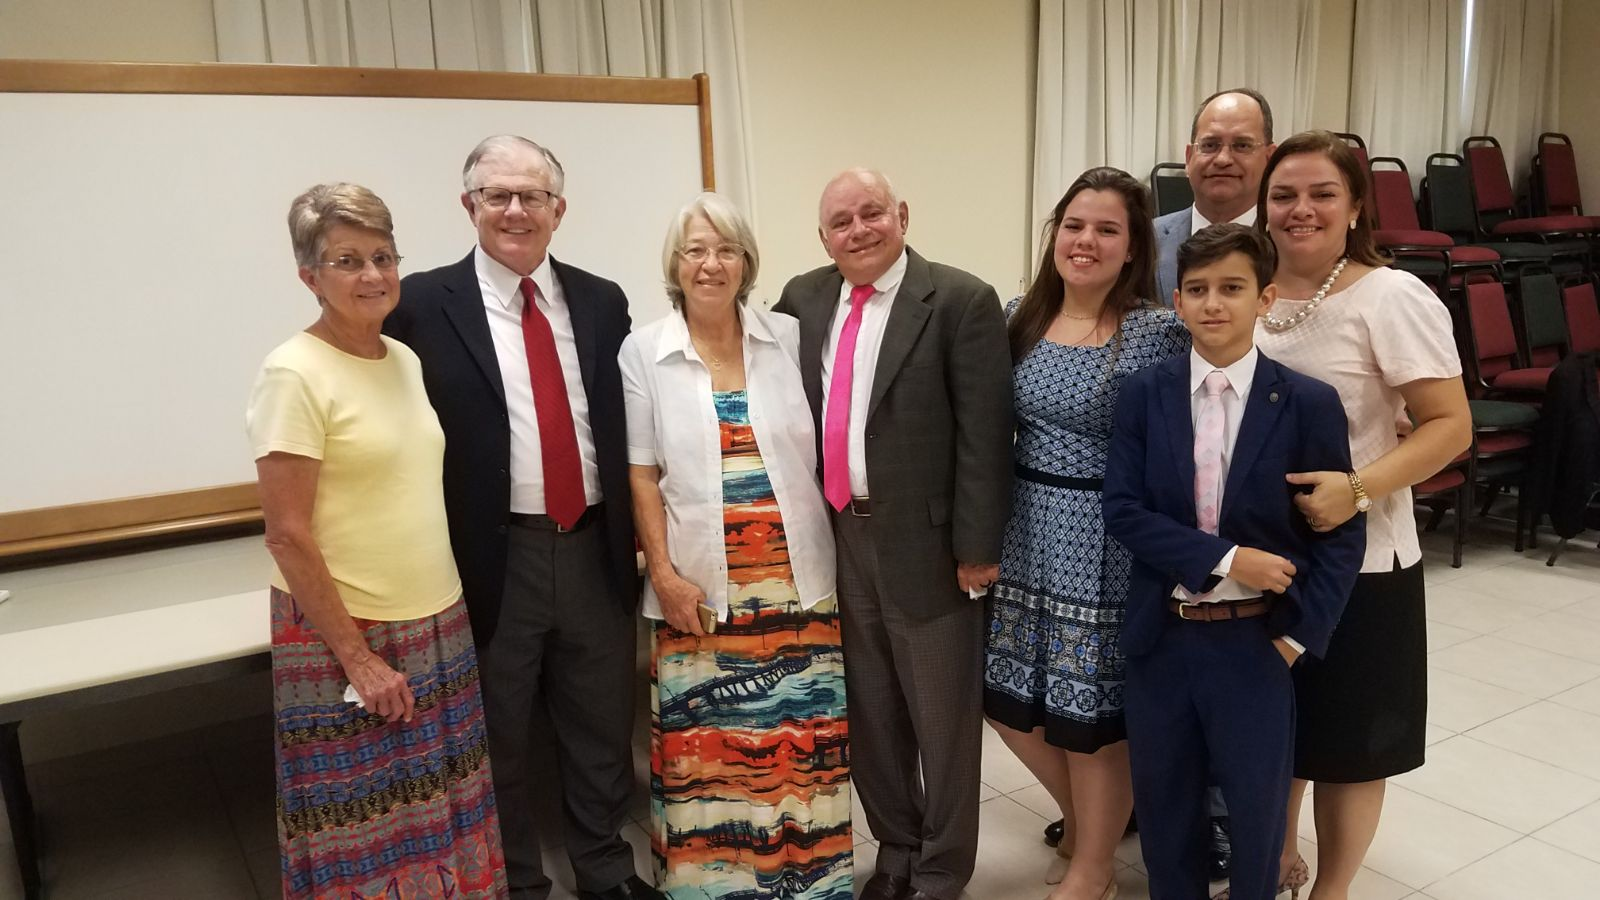 John M. Beck, second from left, and Antonio Ferreira, center, pause for a photo with Beck's wife, Lynette, and Ferreria's wife and family members in Fortaleza, Brazil, on June 1, 2019.